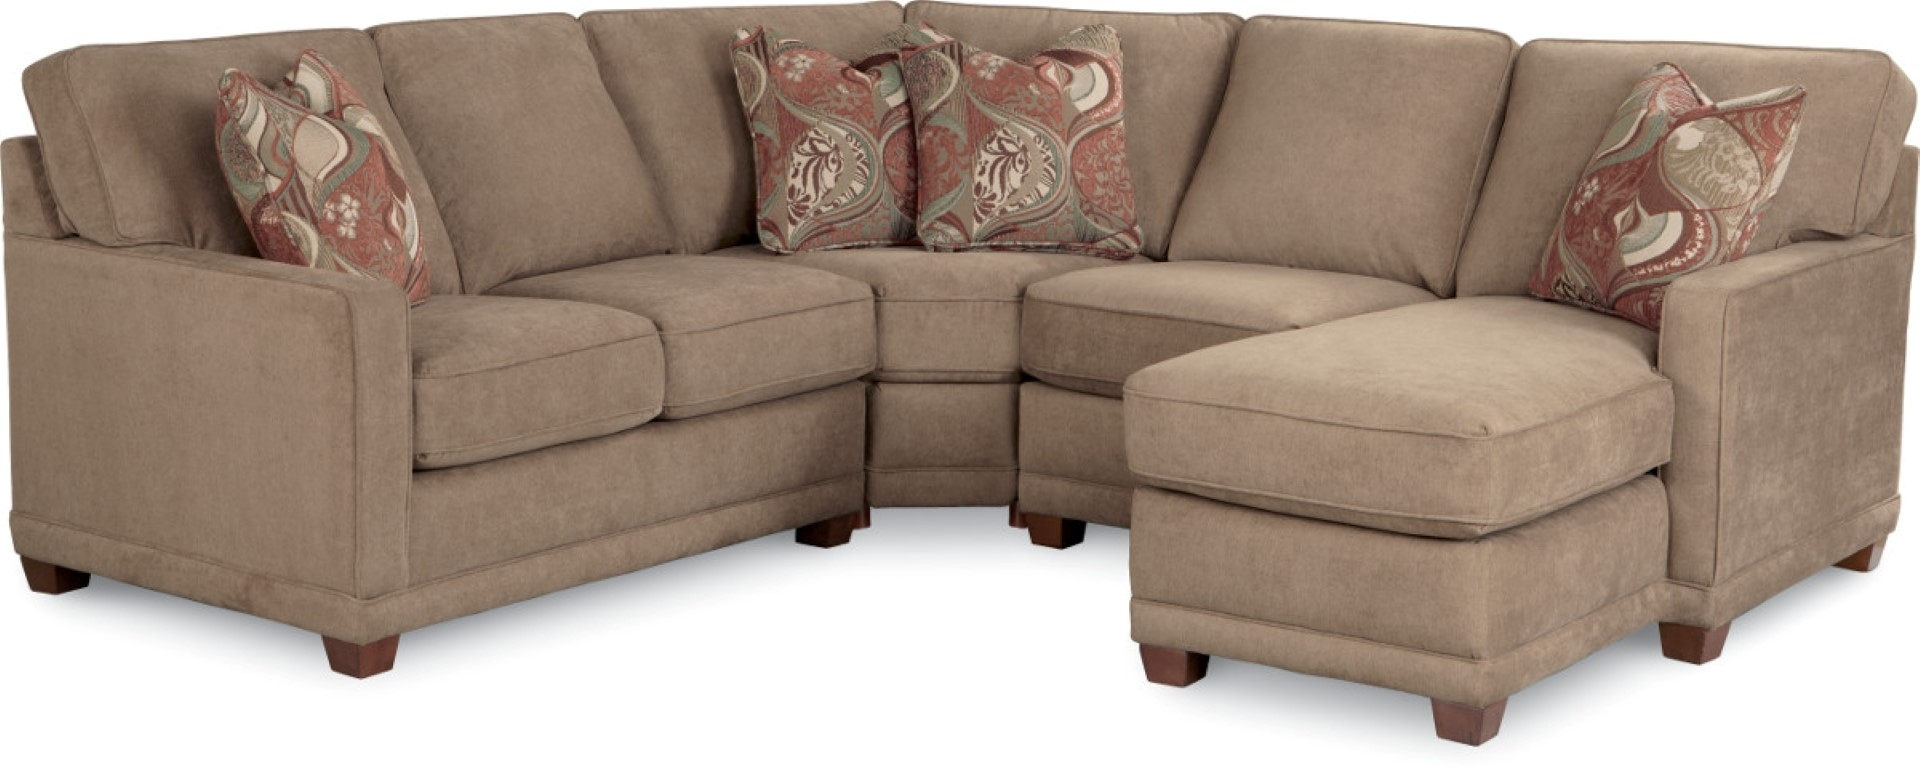 Kennedy Sectional Sofa – Town & Country Furniture With Regard To La Z Boy Sectional Sofas (Image 4 of 10)